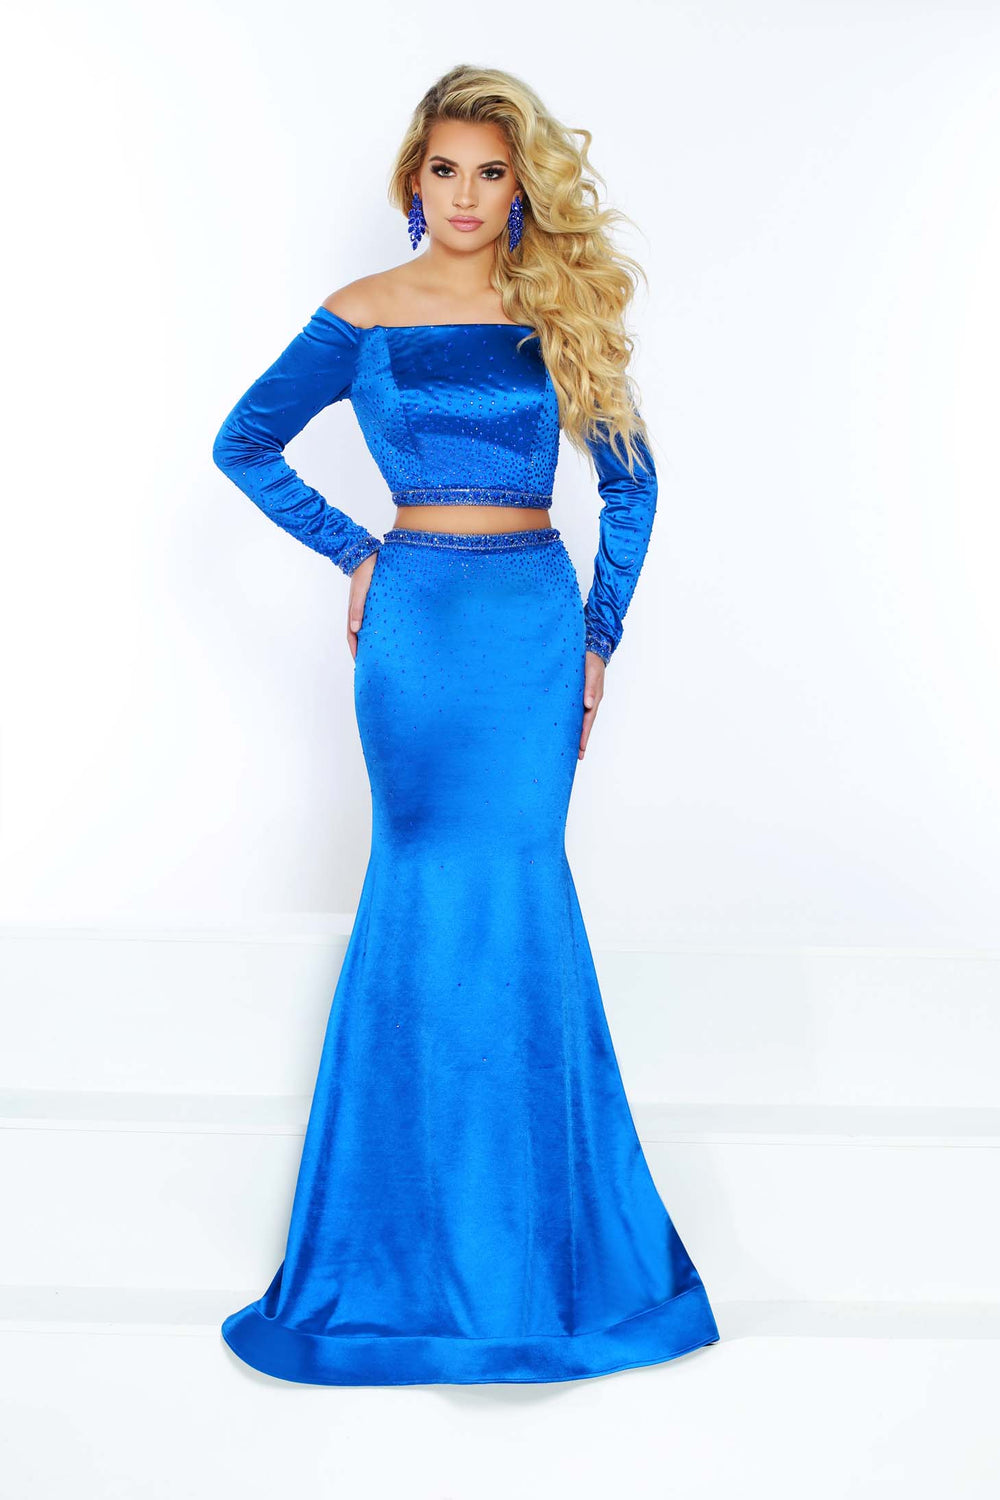 2Cute 91601 2 In 1 Off-The-Shoulder Satin Prom Dress